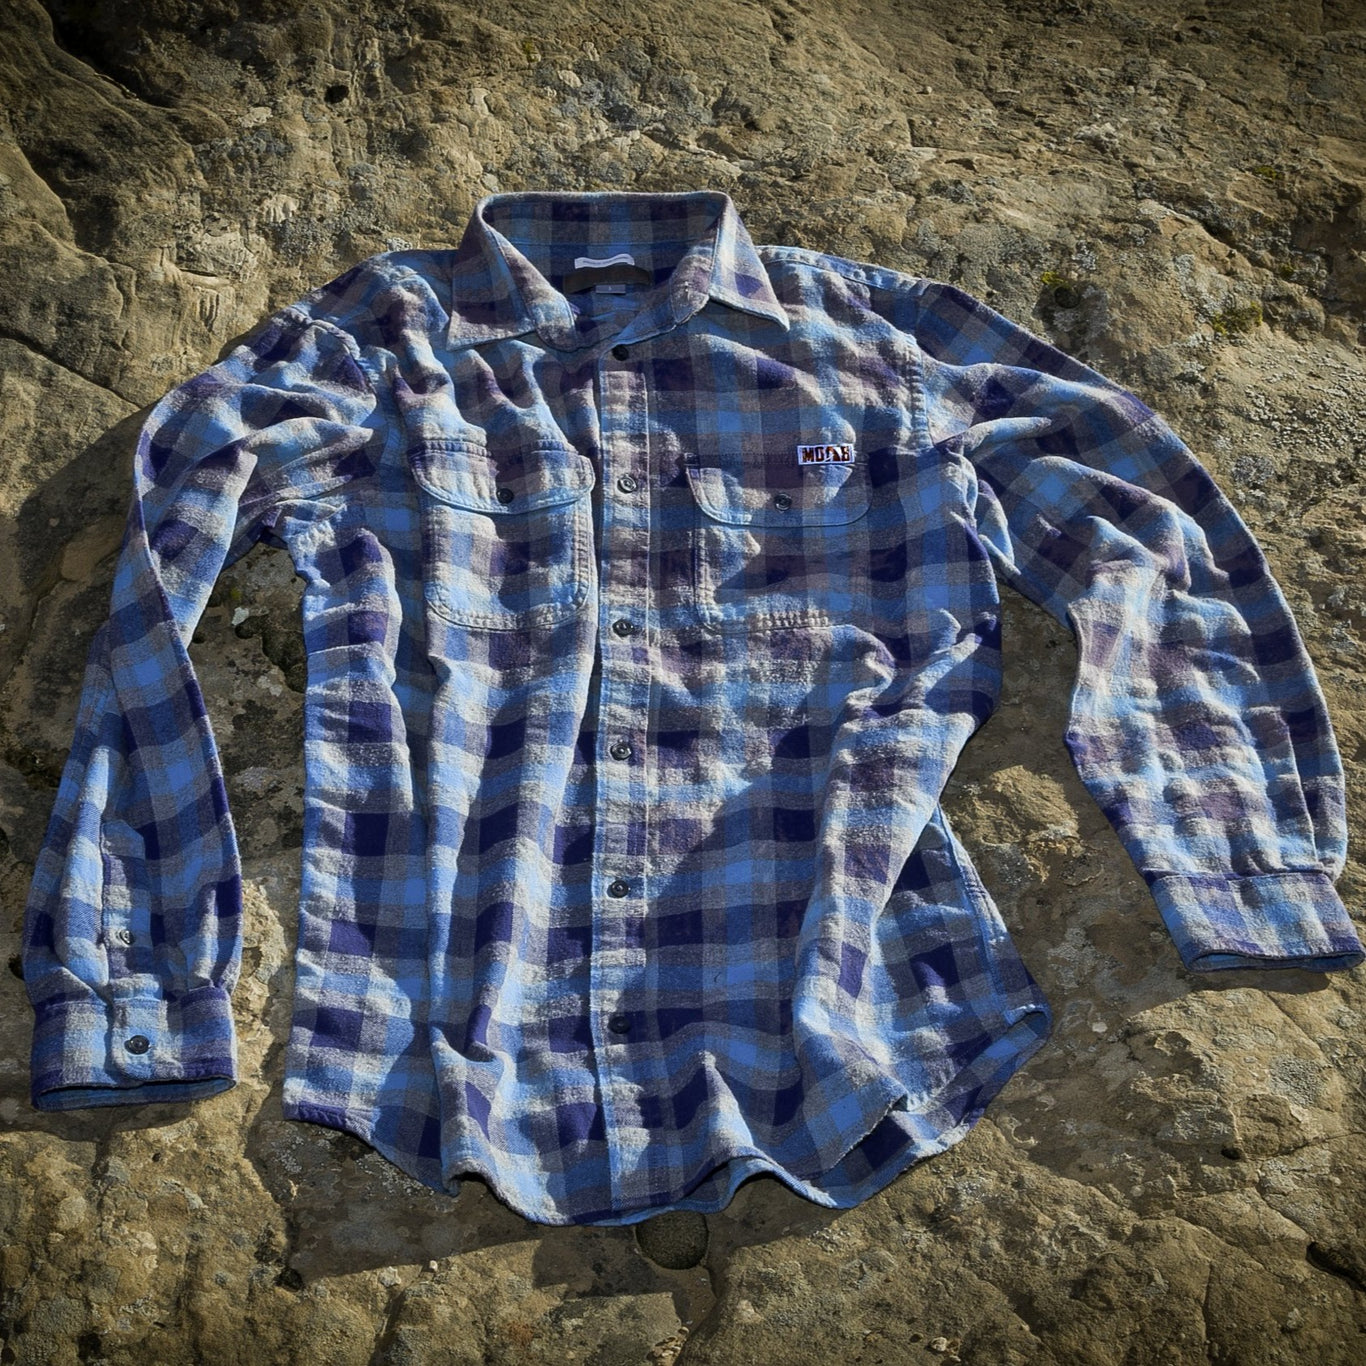 River Guide Mens Shirt - Long Sleeve